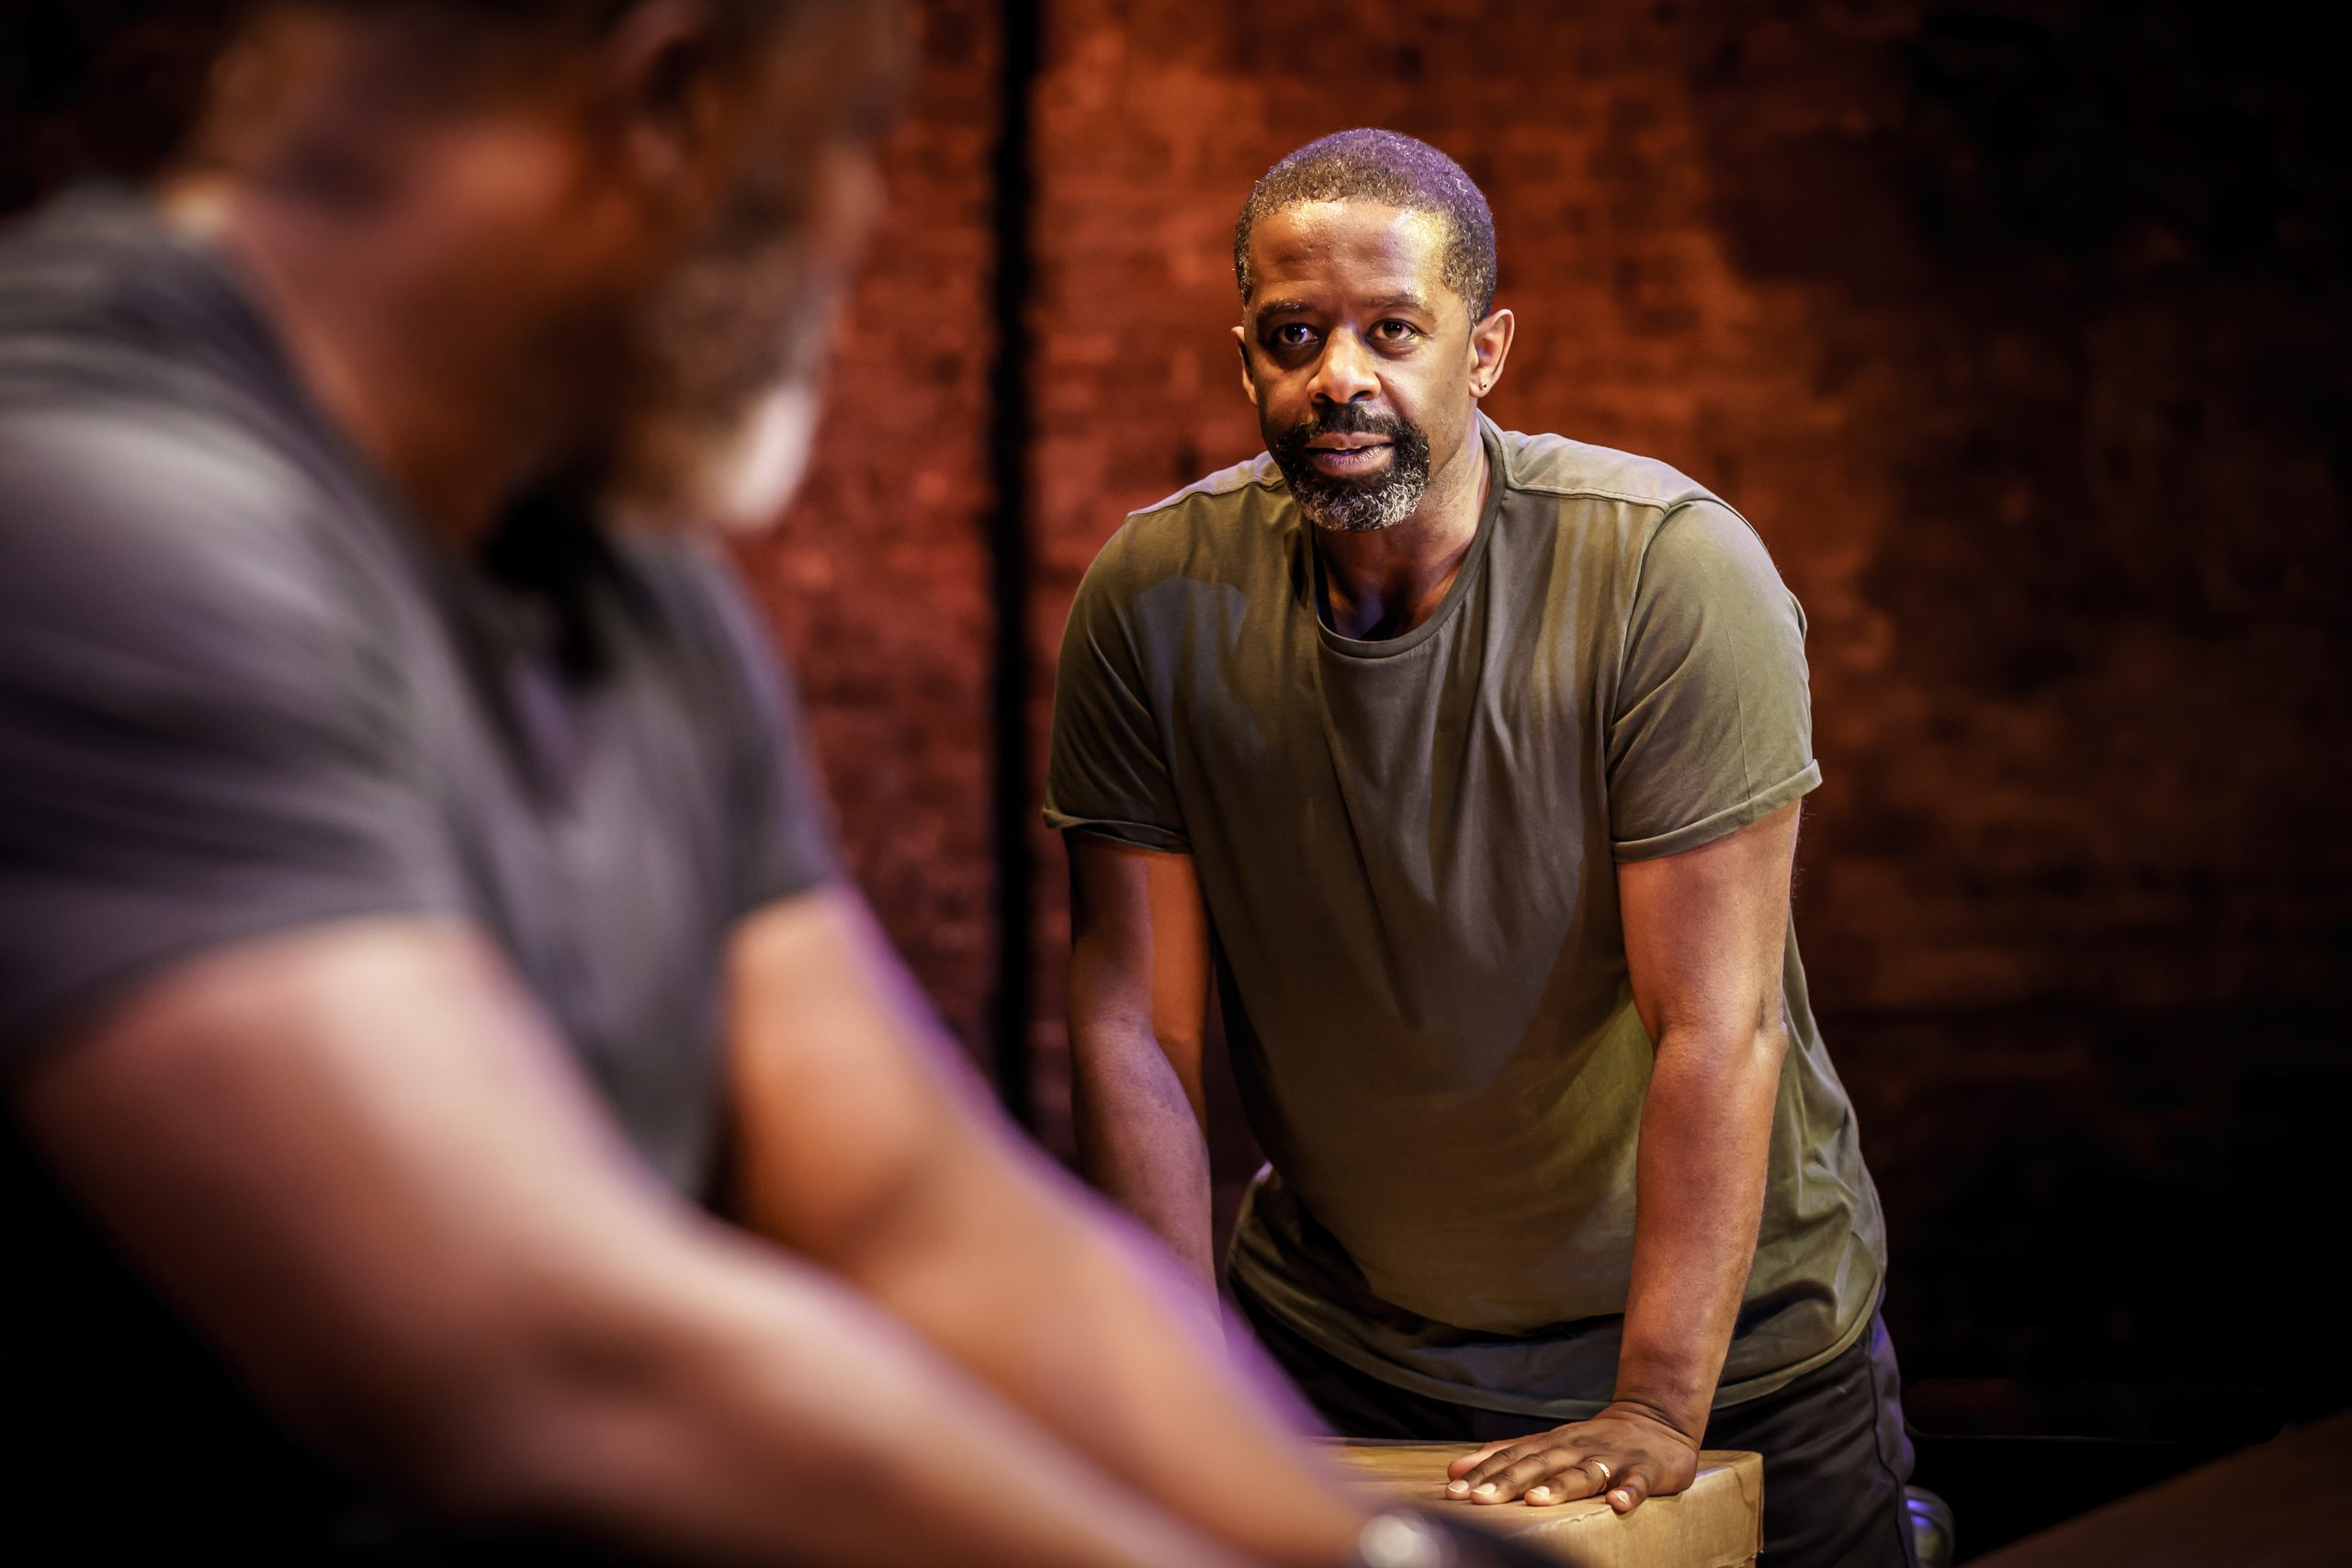 Hymn at the Almeida. Danny Sapani and Adrian Lester. Photo credit - Marc Brenner